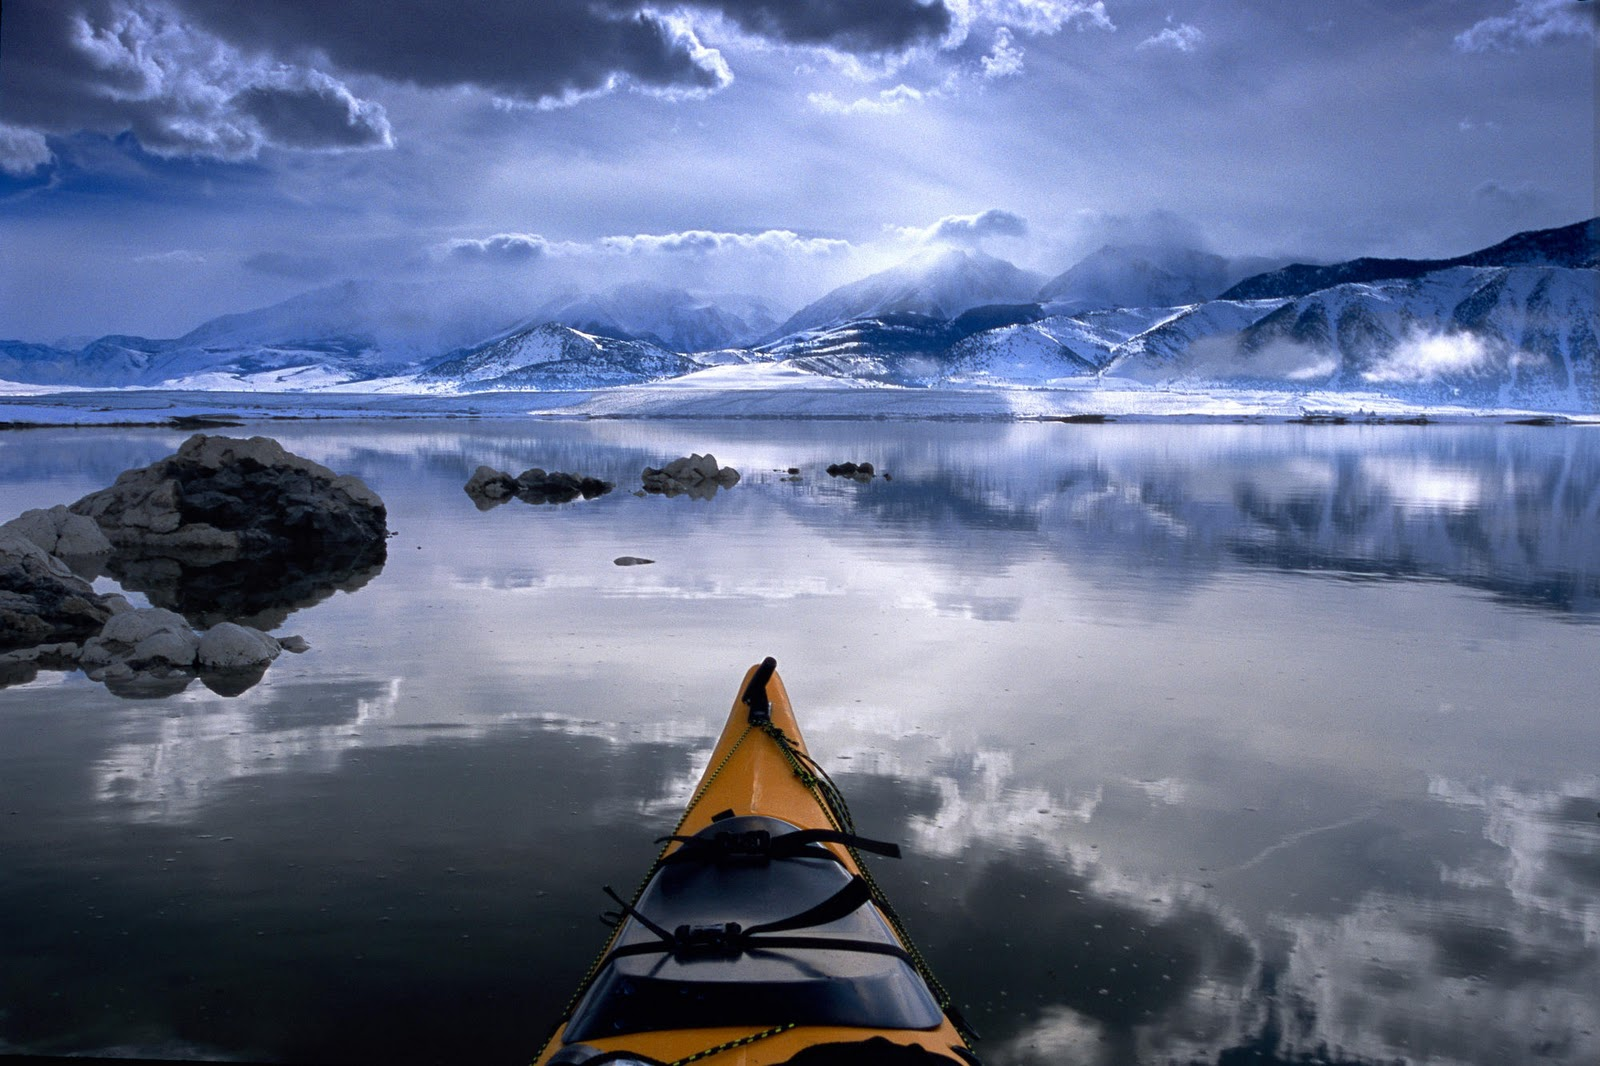 http://2.bp.blogspot.com/-D0TO-6z62to/TumTx7E_tMI/AAAAAAAAANs/kjlKOdArmsc/s1600/winter-kayaking-california-wallpaper-tab.jpg